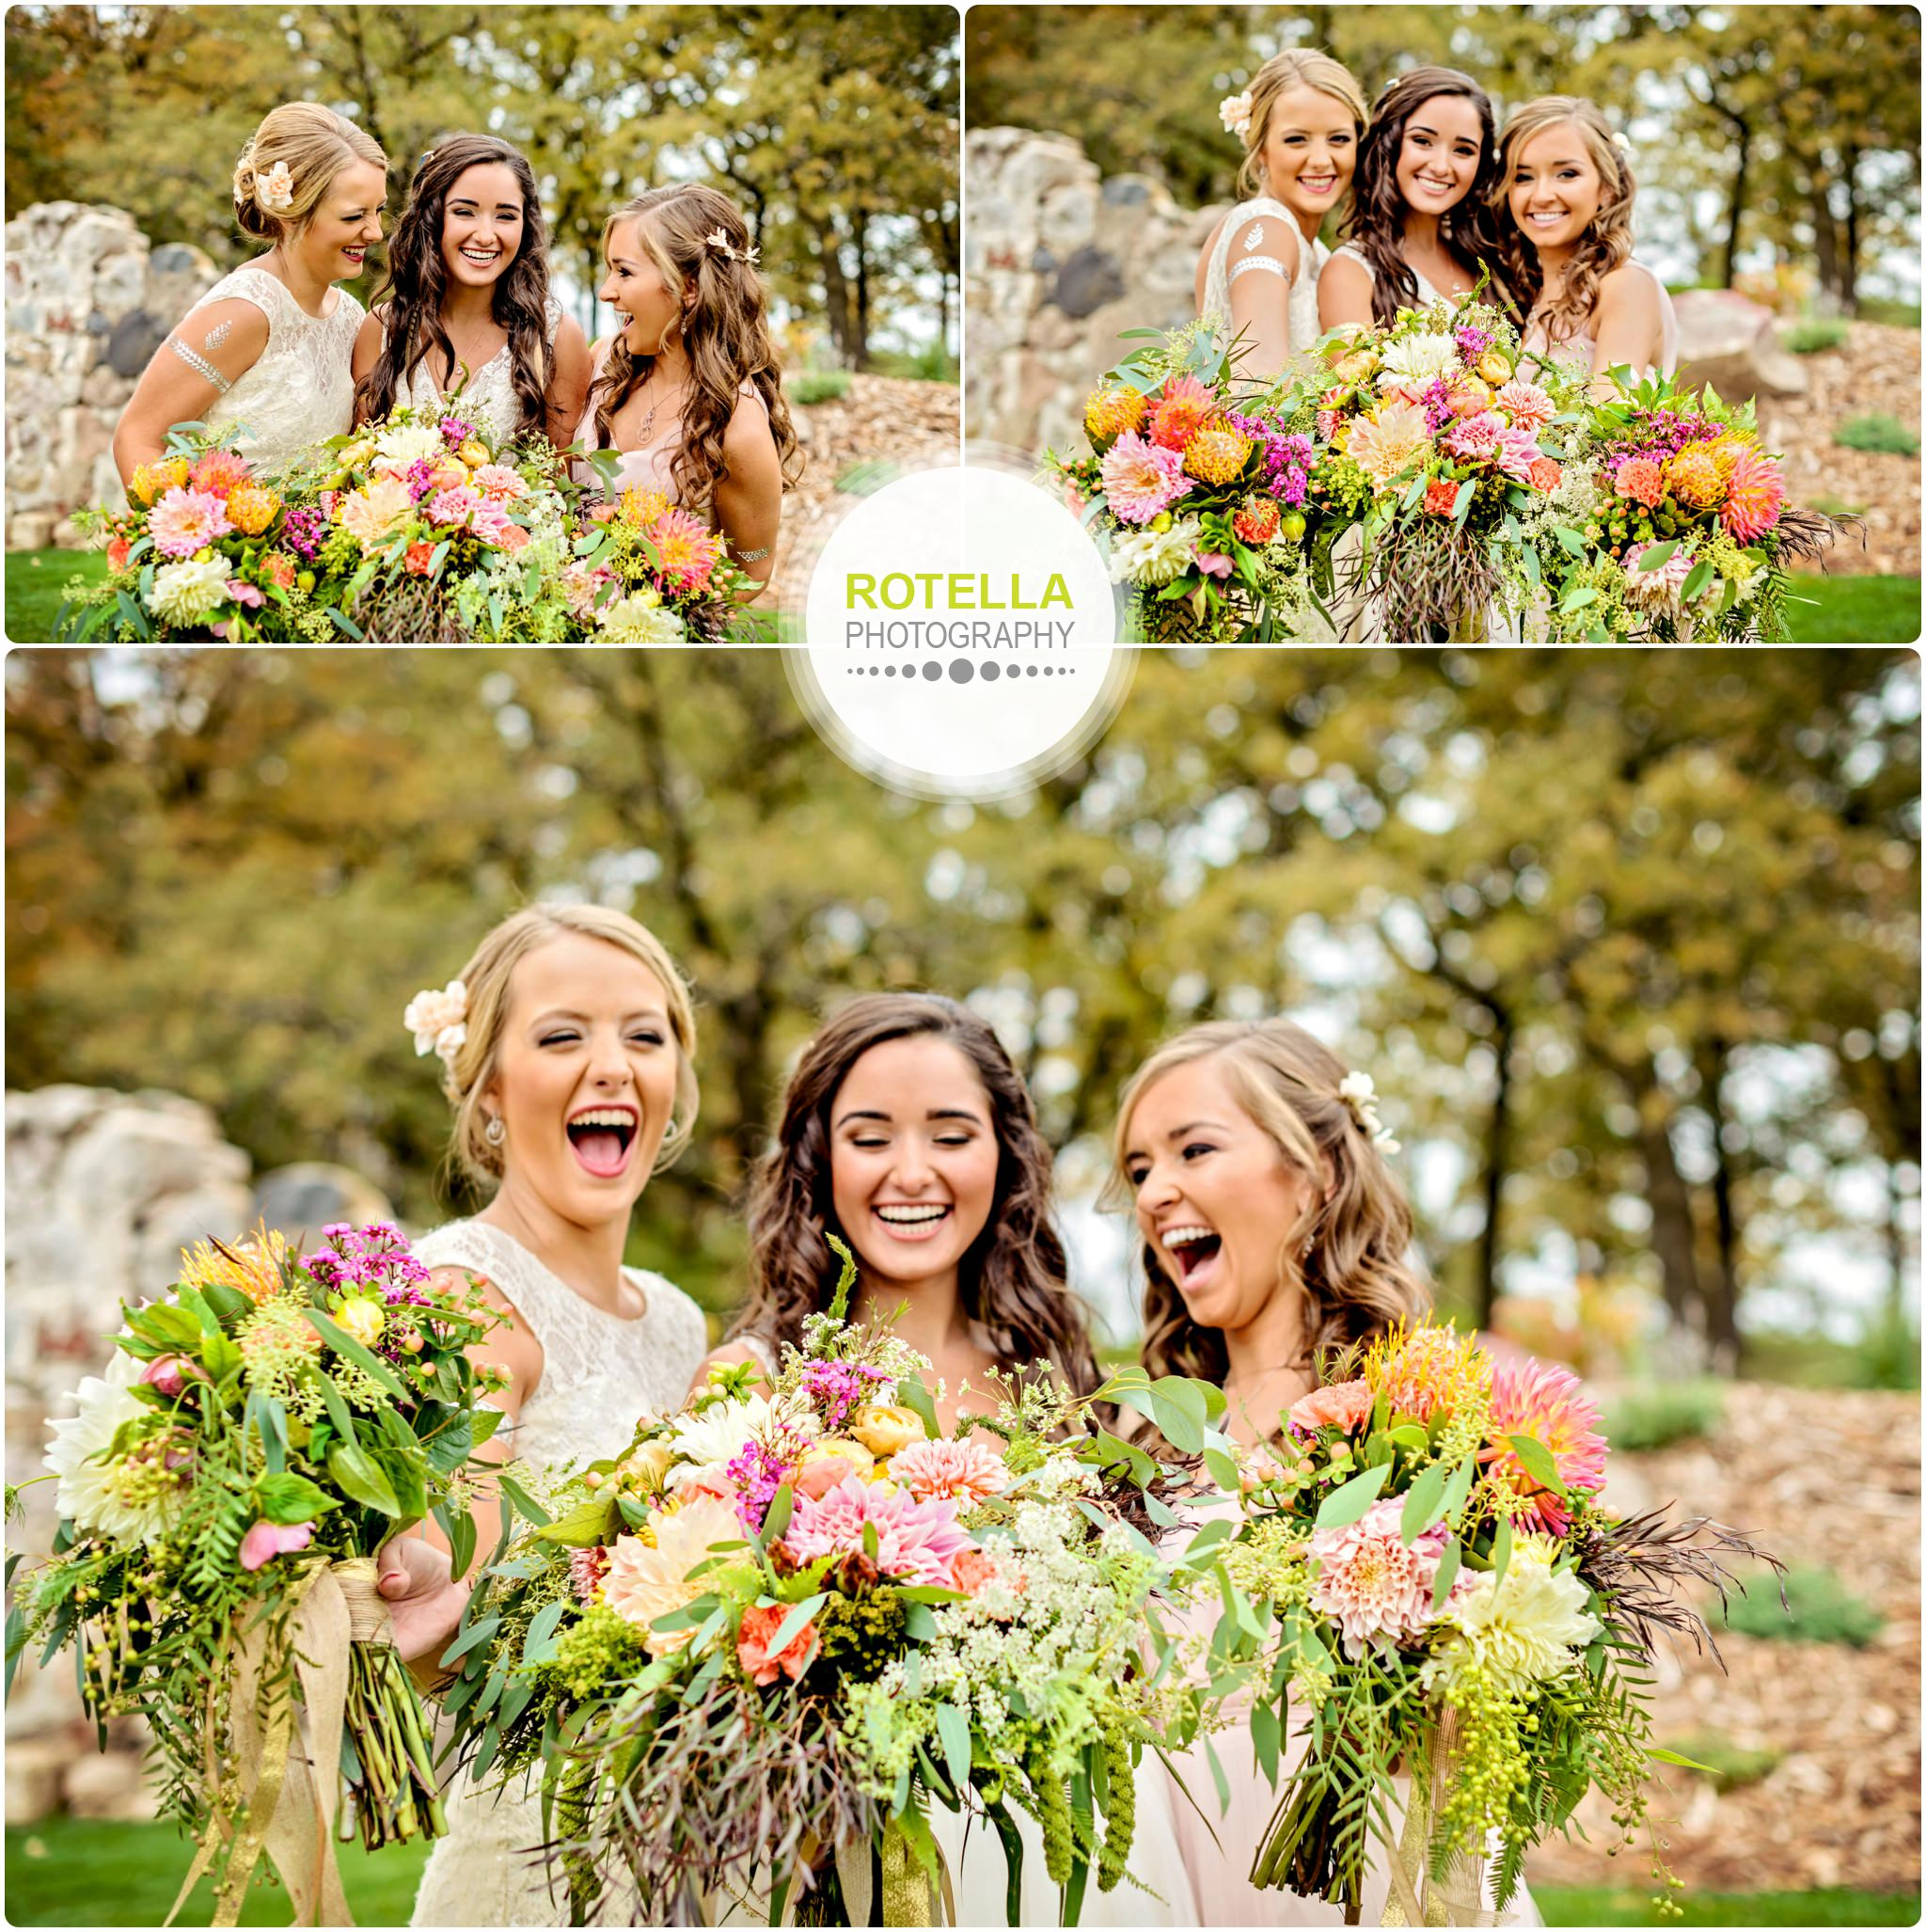 Bride and bridesmaids portraits outside with flowers